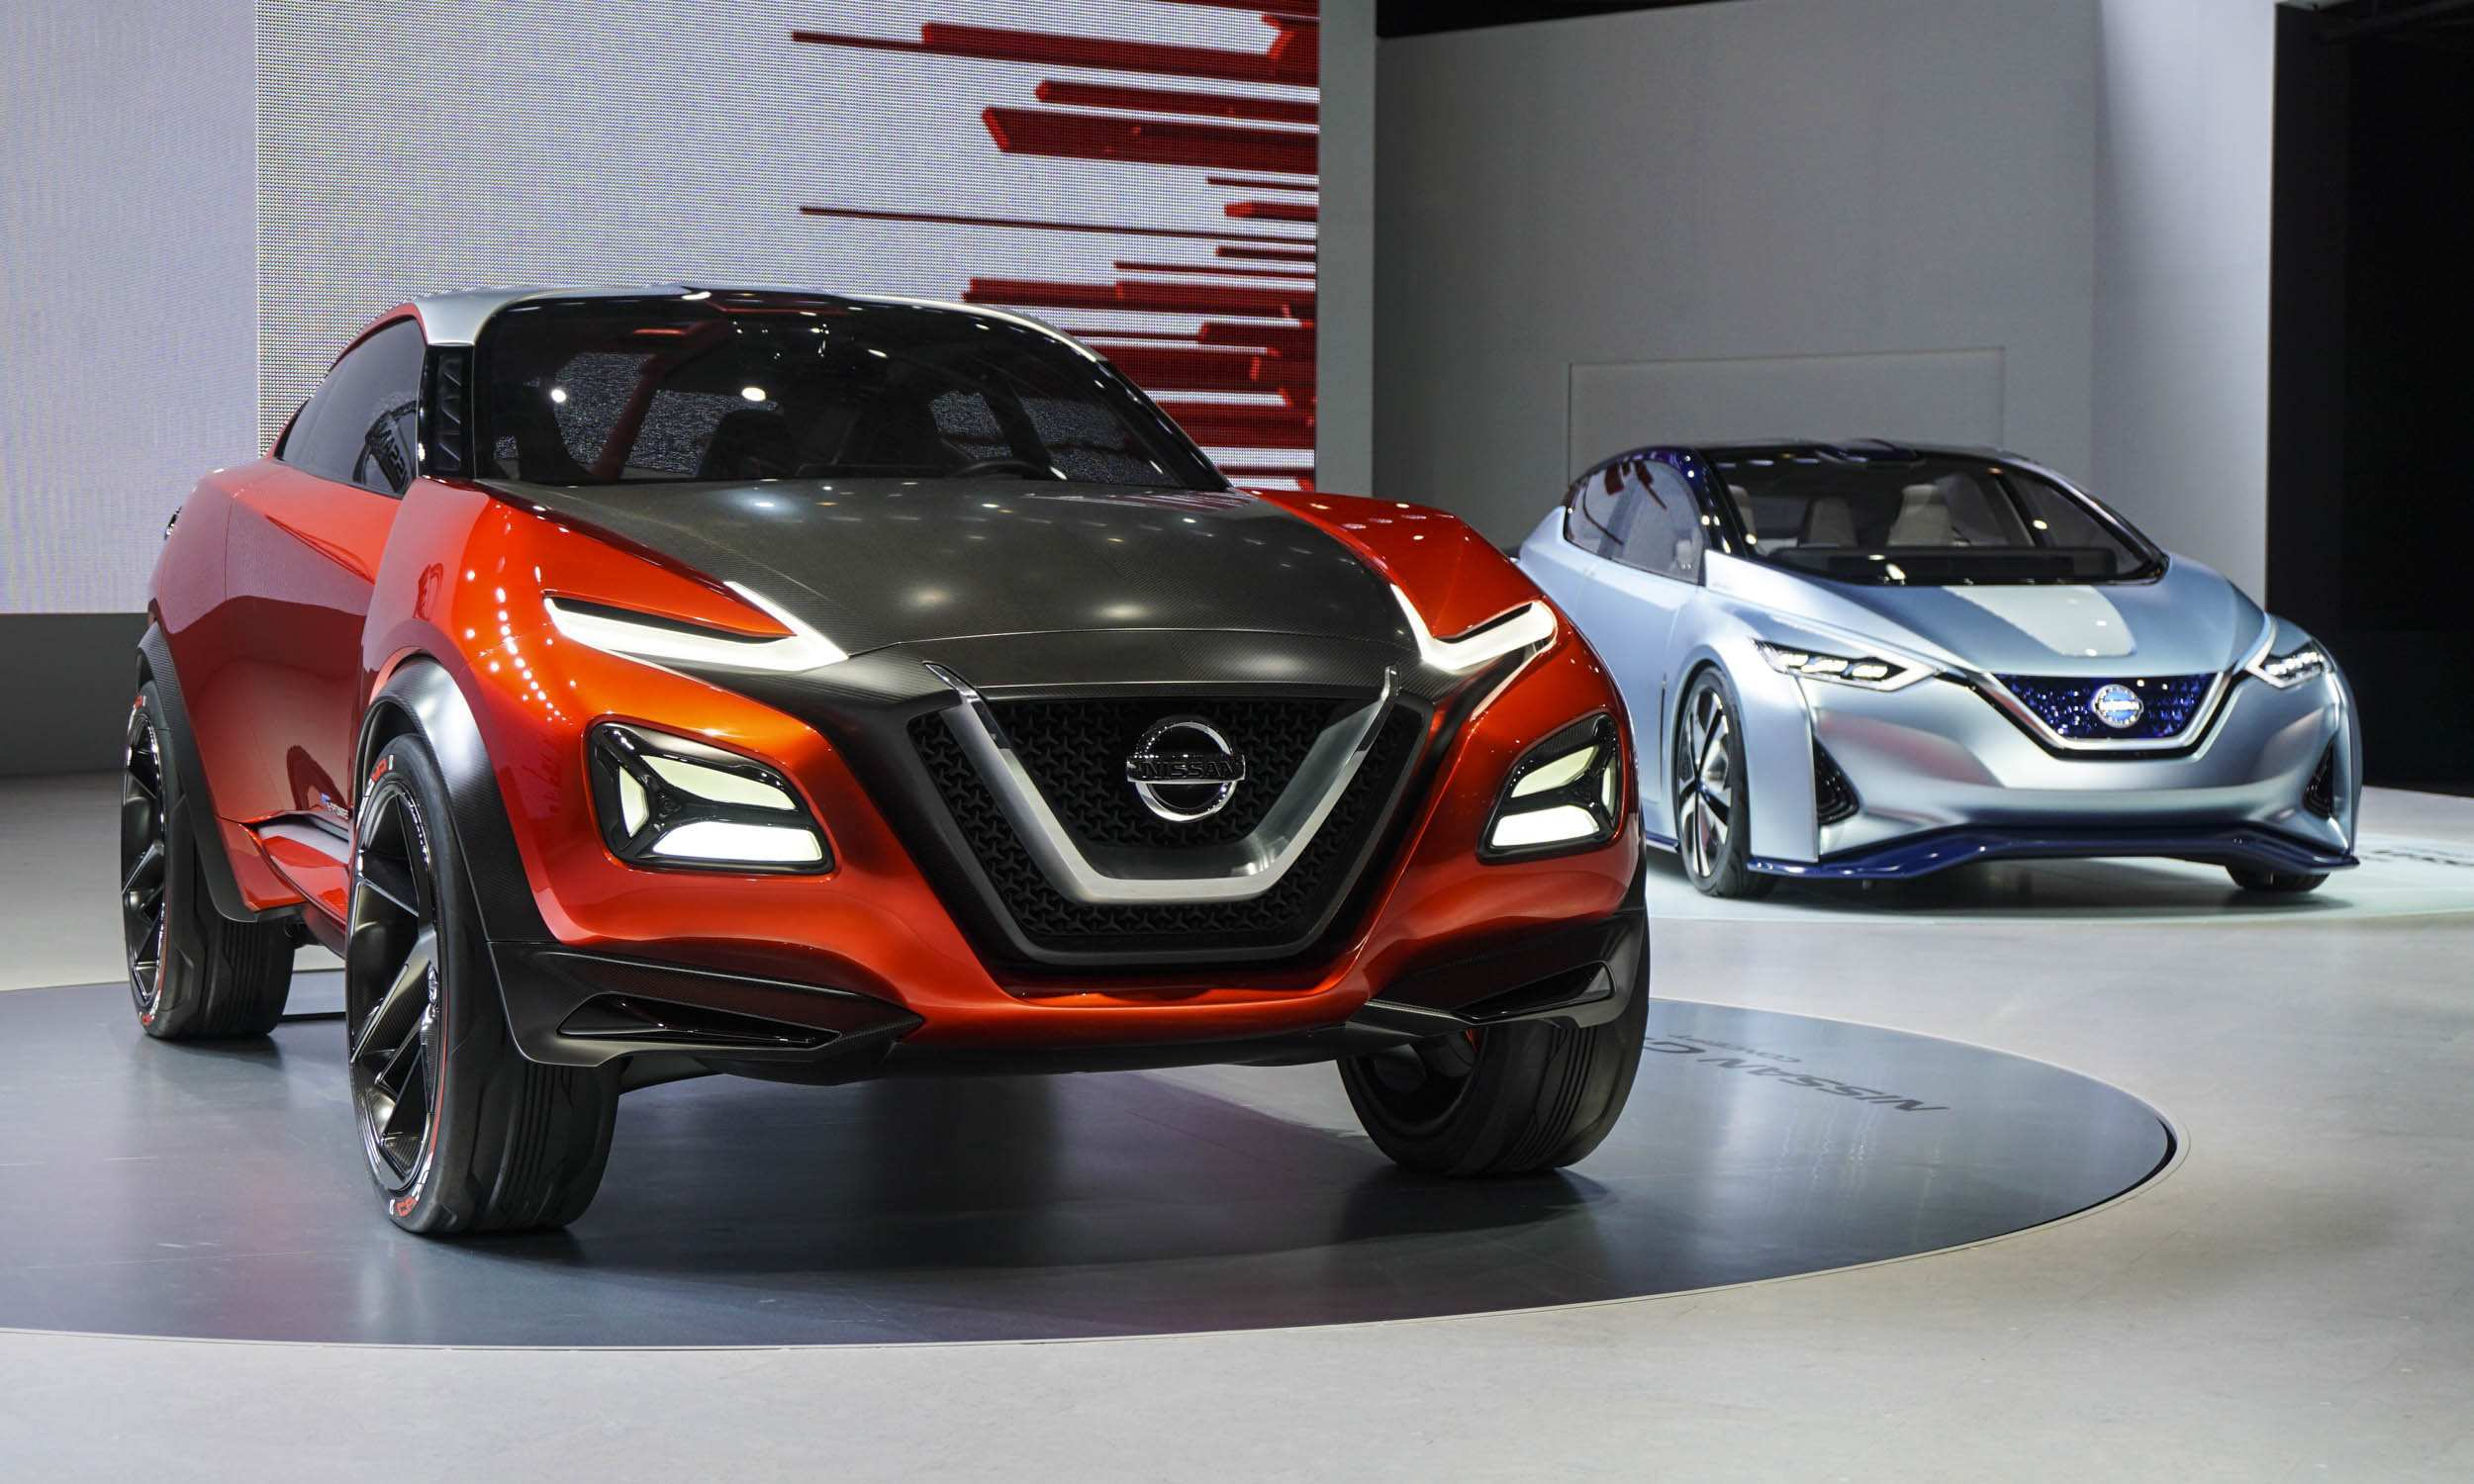 92 New Nissan Concept 2020 Suv Prices by Nissan Concept 2020 Suv